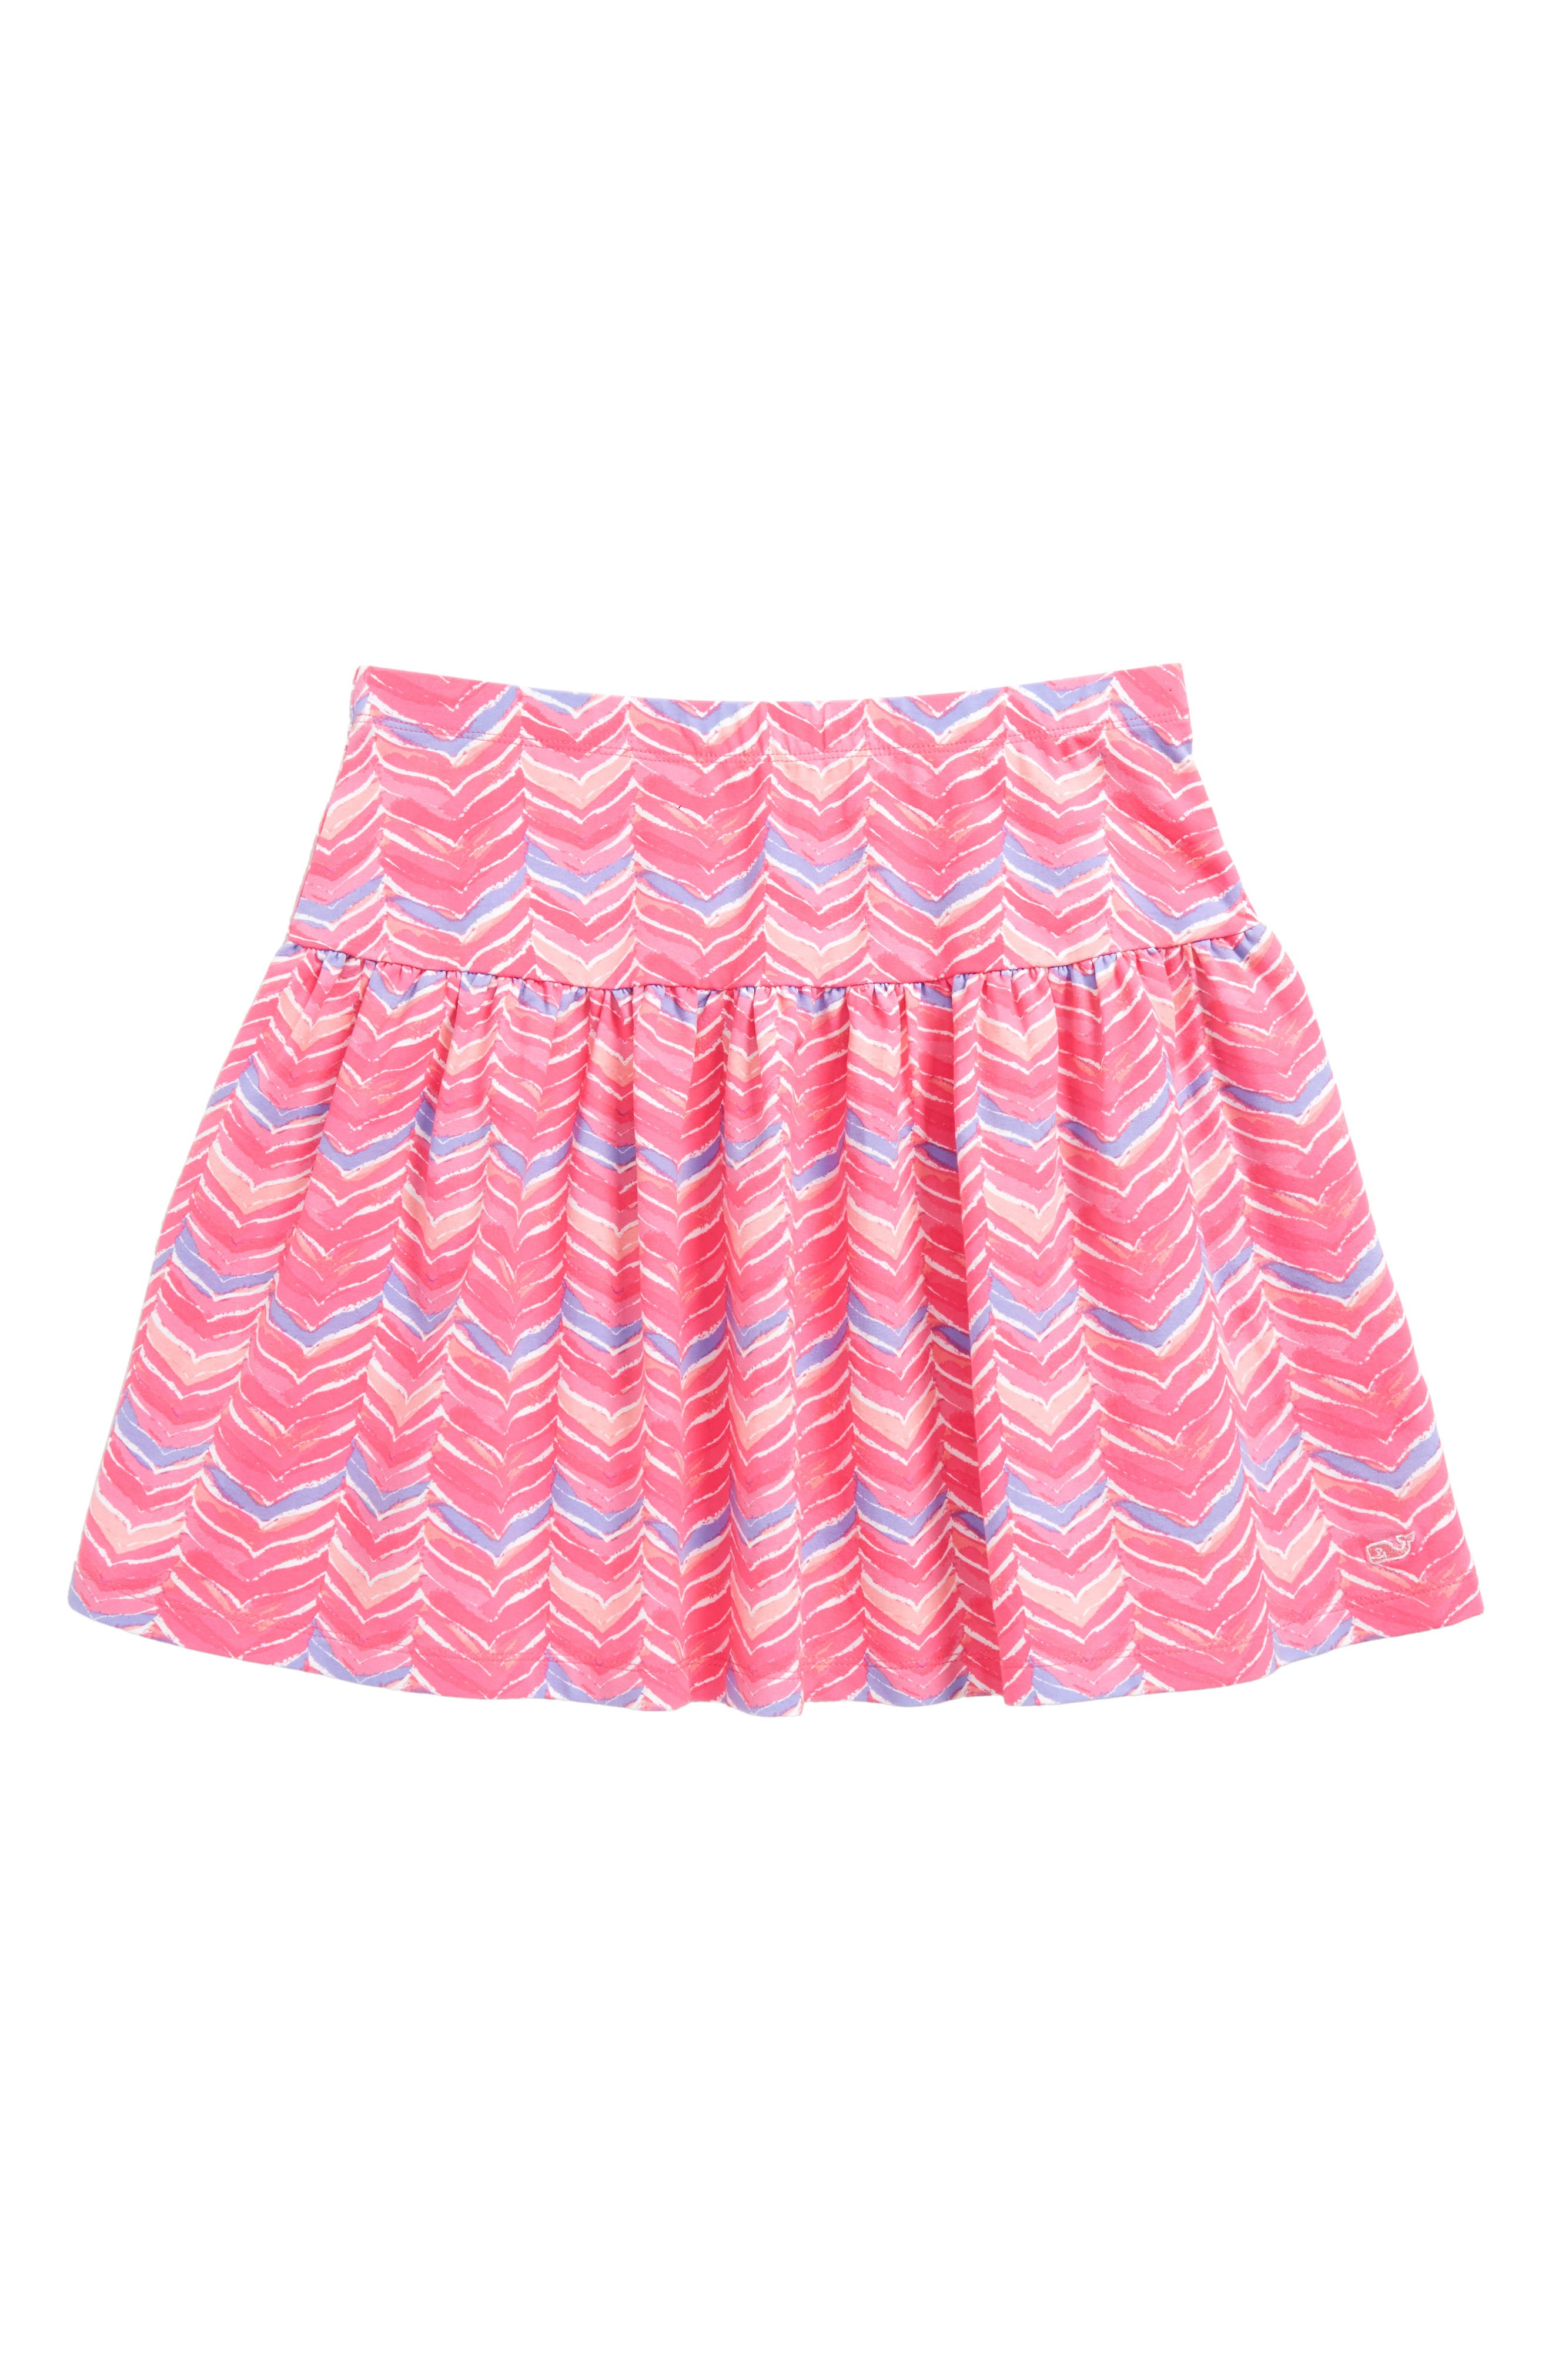 Watercolor Whale Tail Print Skirt,                             Main thumbnail 1, color,                             Pink Sherbet